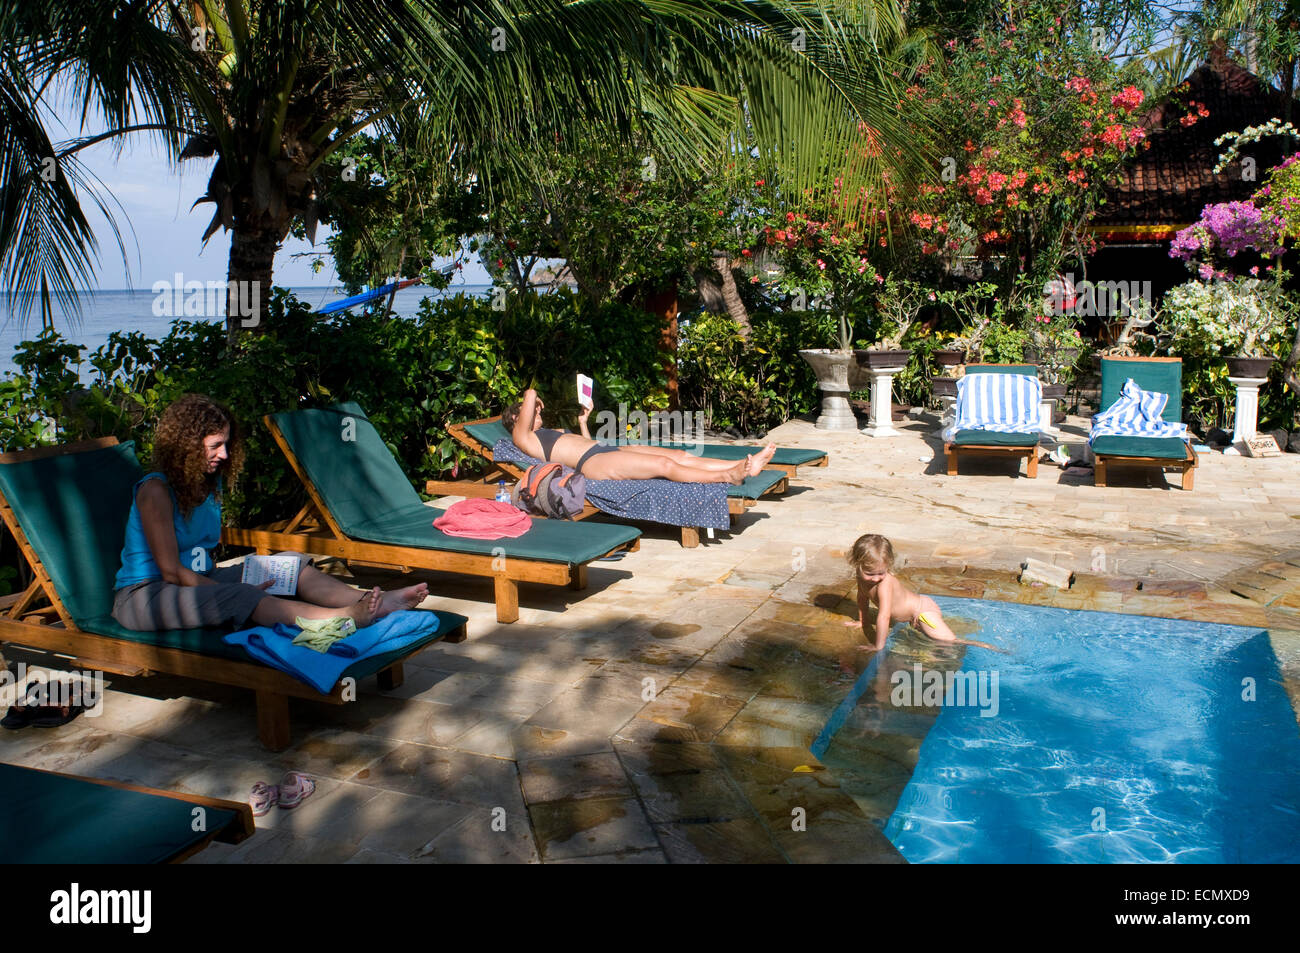 Swimming Pool Of Bali Dream House Hotel Amed Bali Bali Dream Stock Photo Royalty Free Image